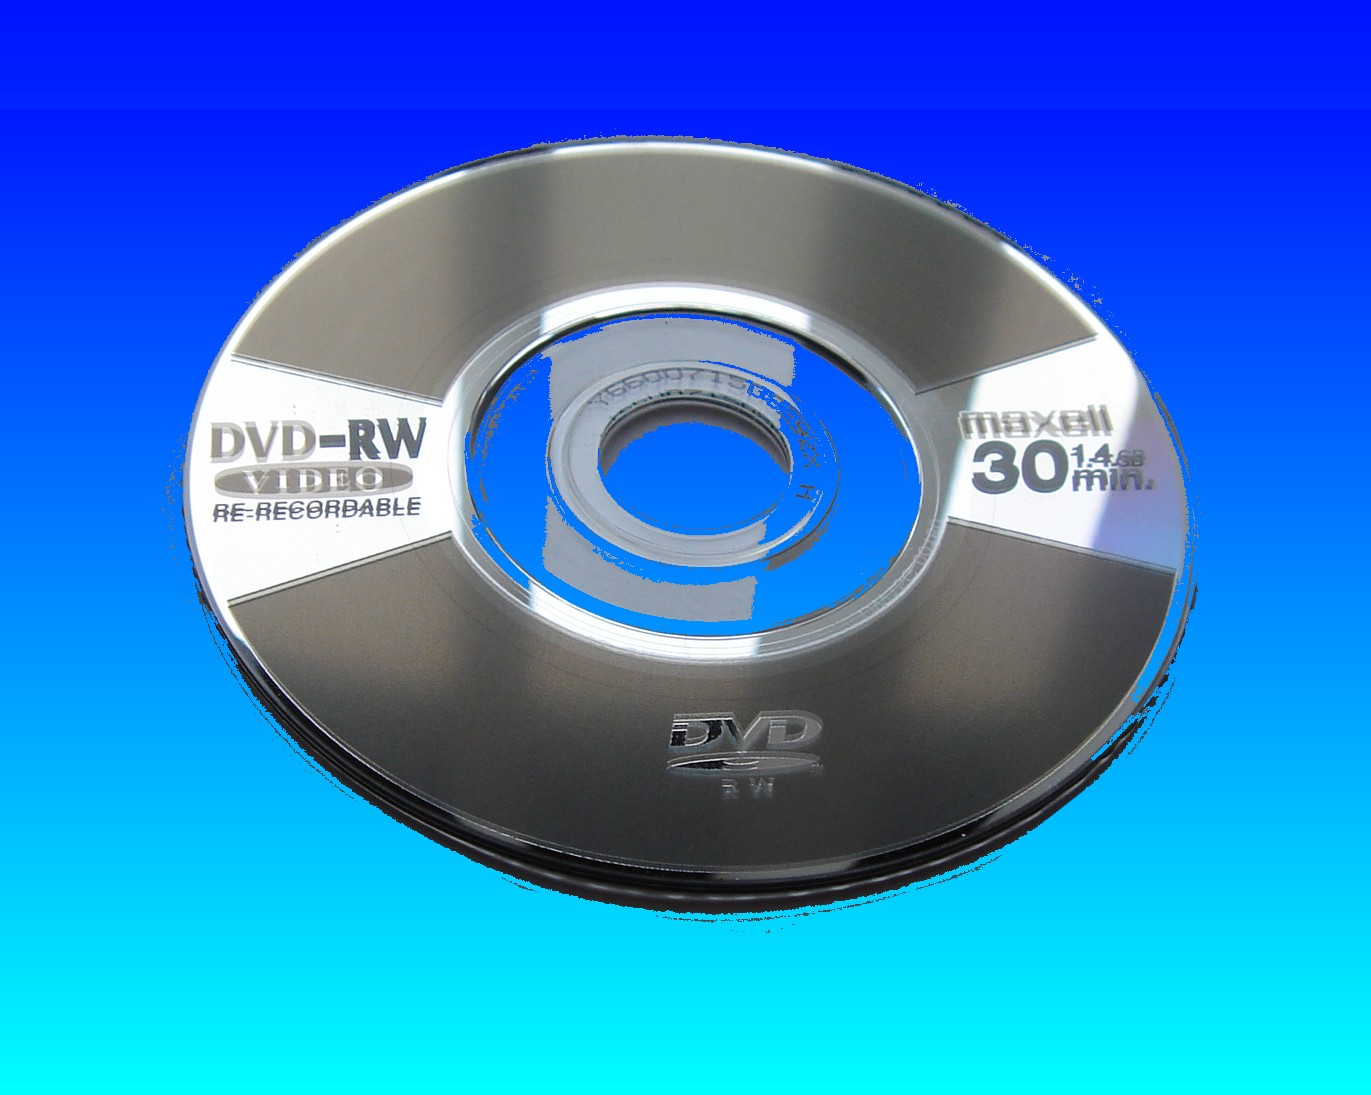 A Maxell DVD-RW mini disc that failed to finalise in the camera. The disk arrived at out offices to restore the lost video clips.